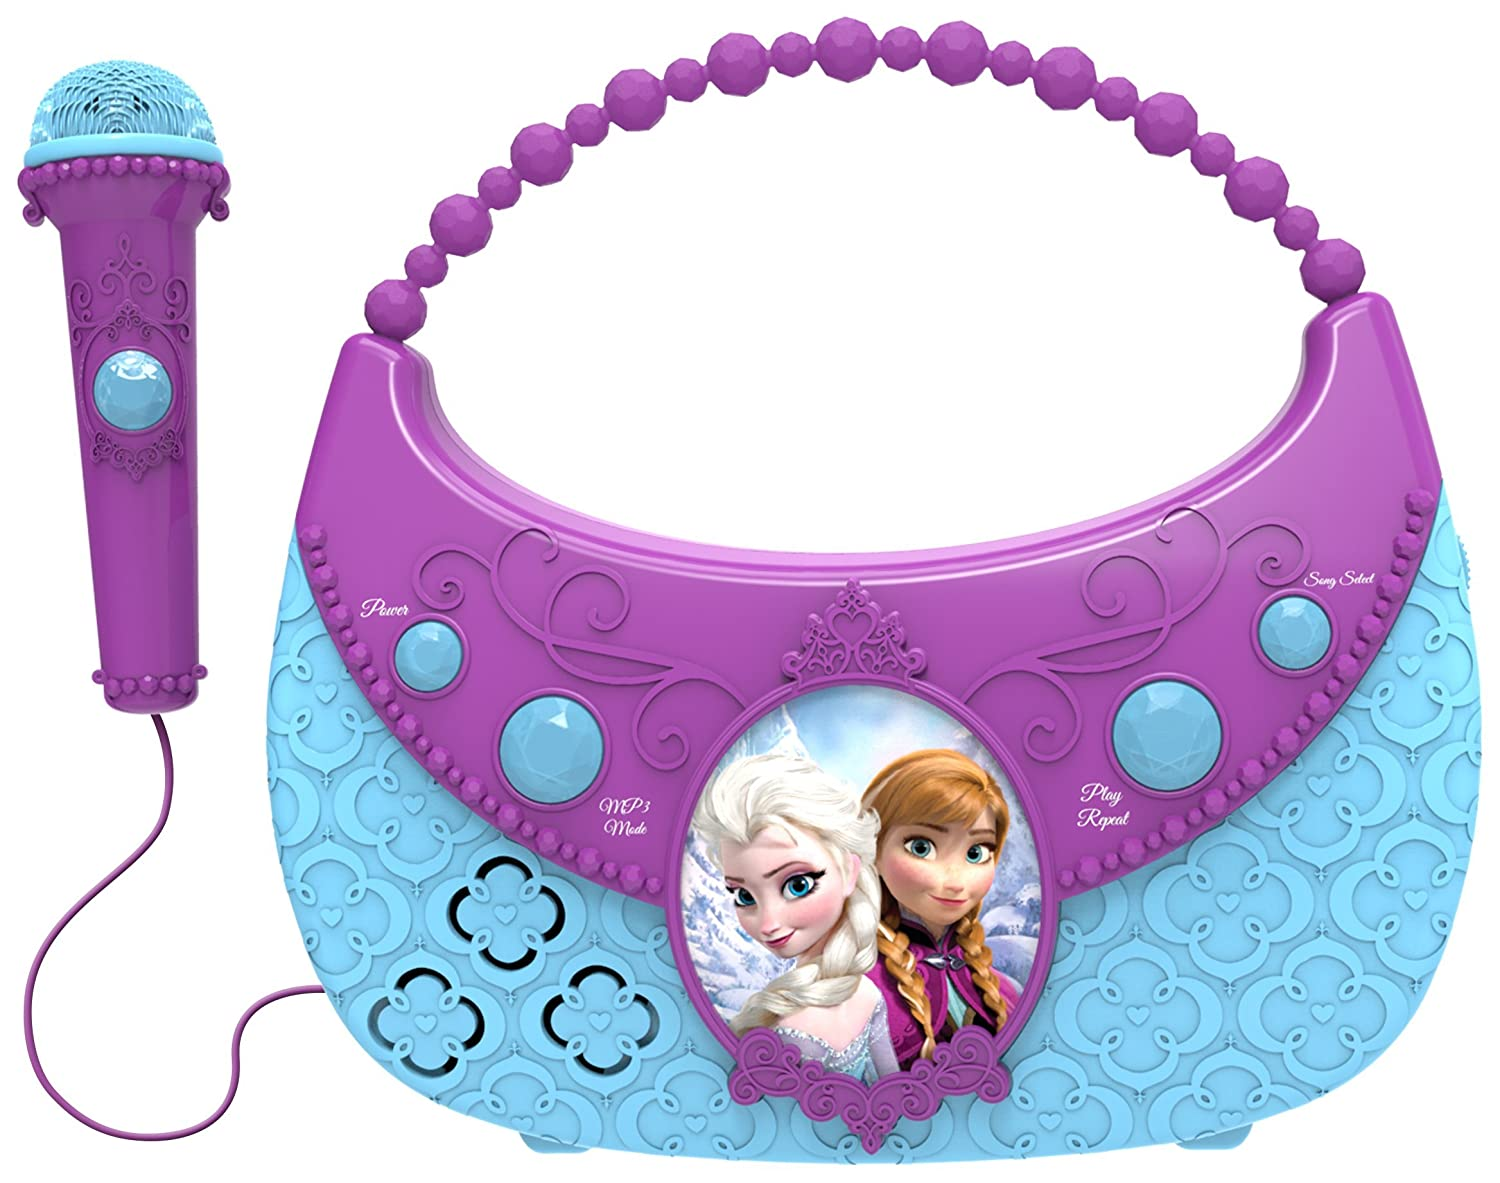 Disney Frozen Sing Along Boombox